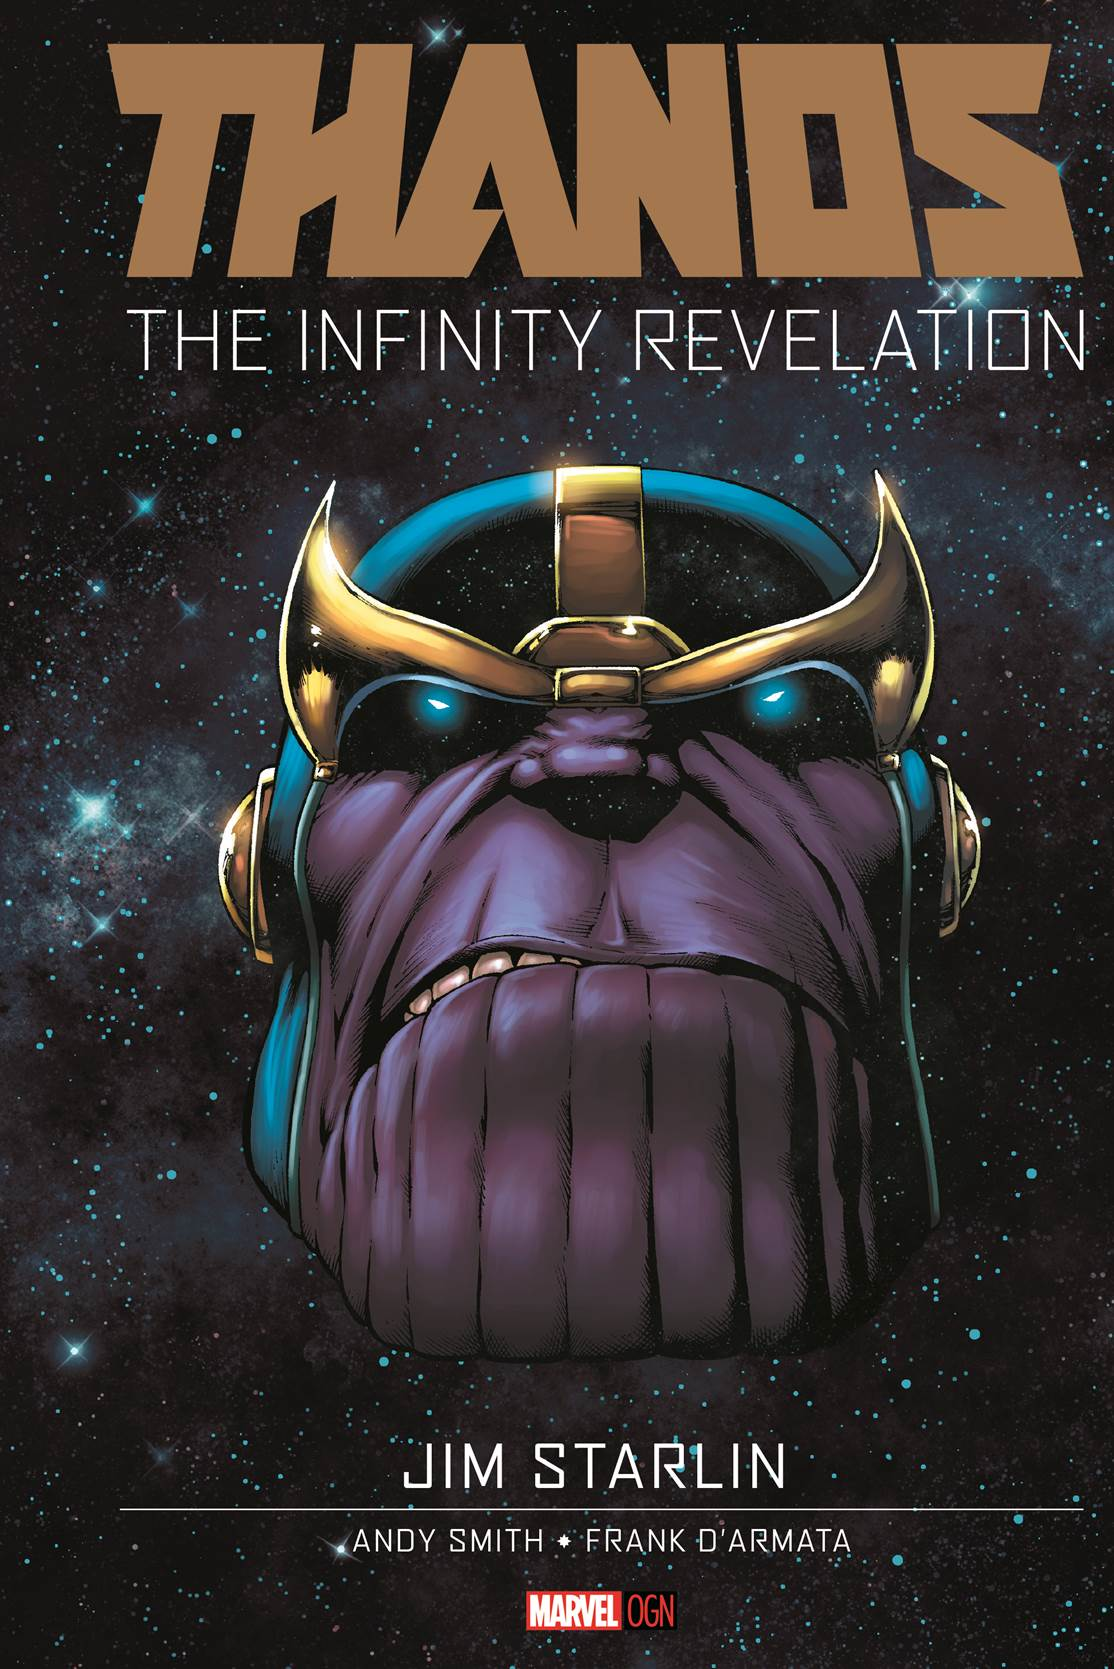 The Infinity Wart Saga Part 1 Issue: Presenting A New Lettered Preview Of THANOS: THE INFINITY